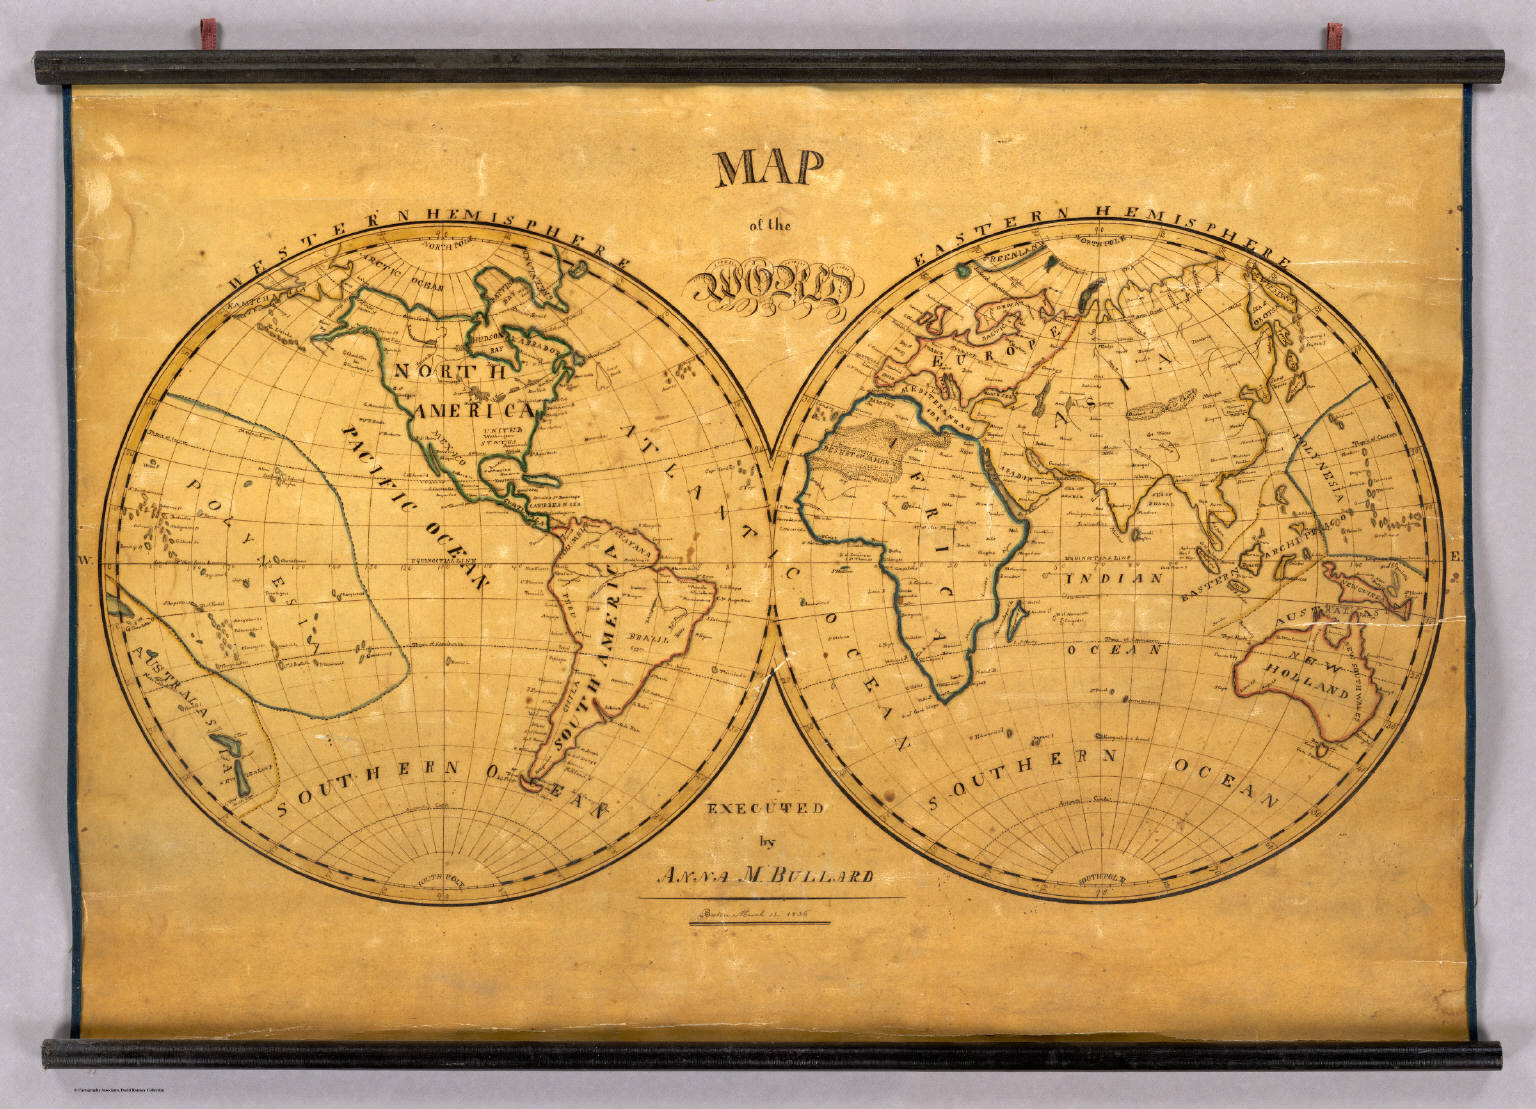 Map of the world david rumsey historical map collection map of the world gumiabroncs Choice Image